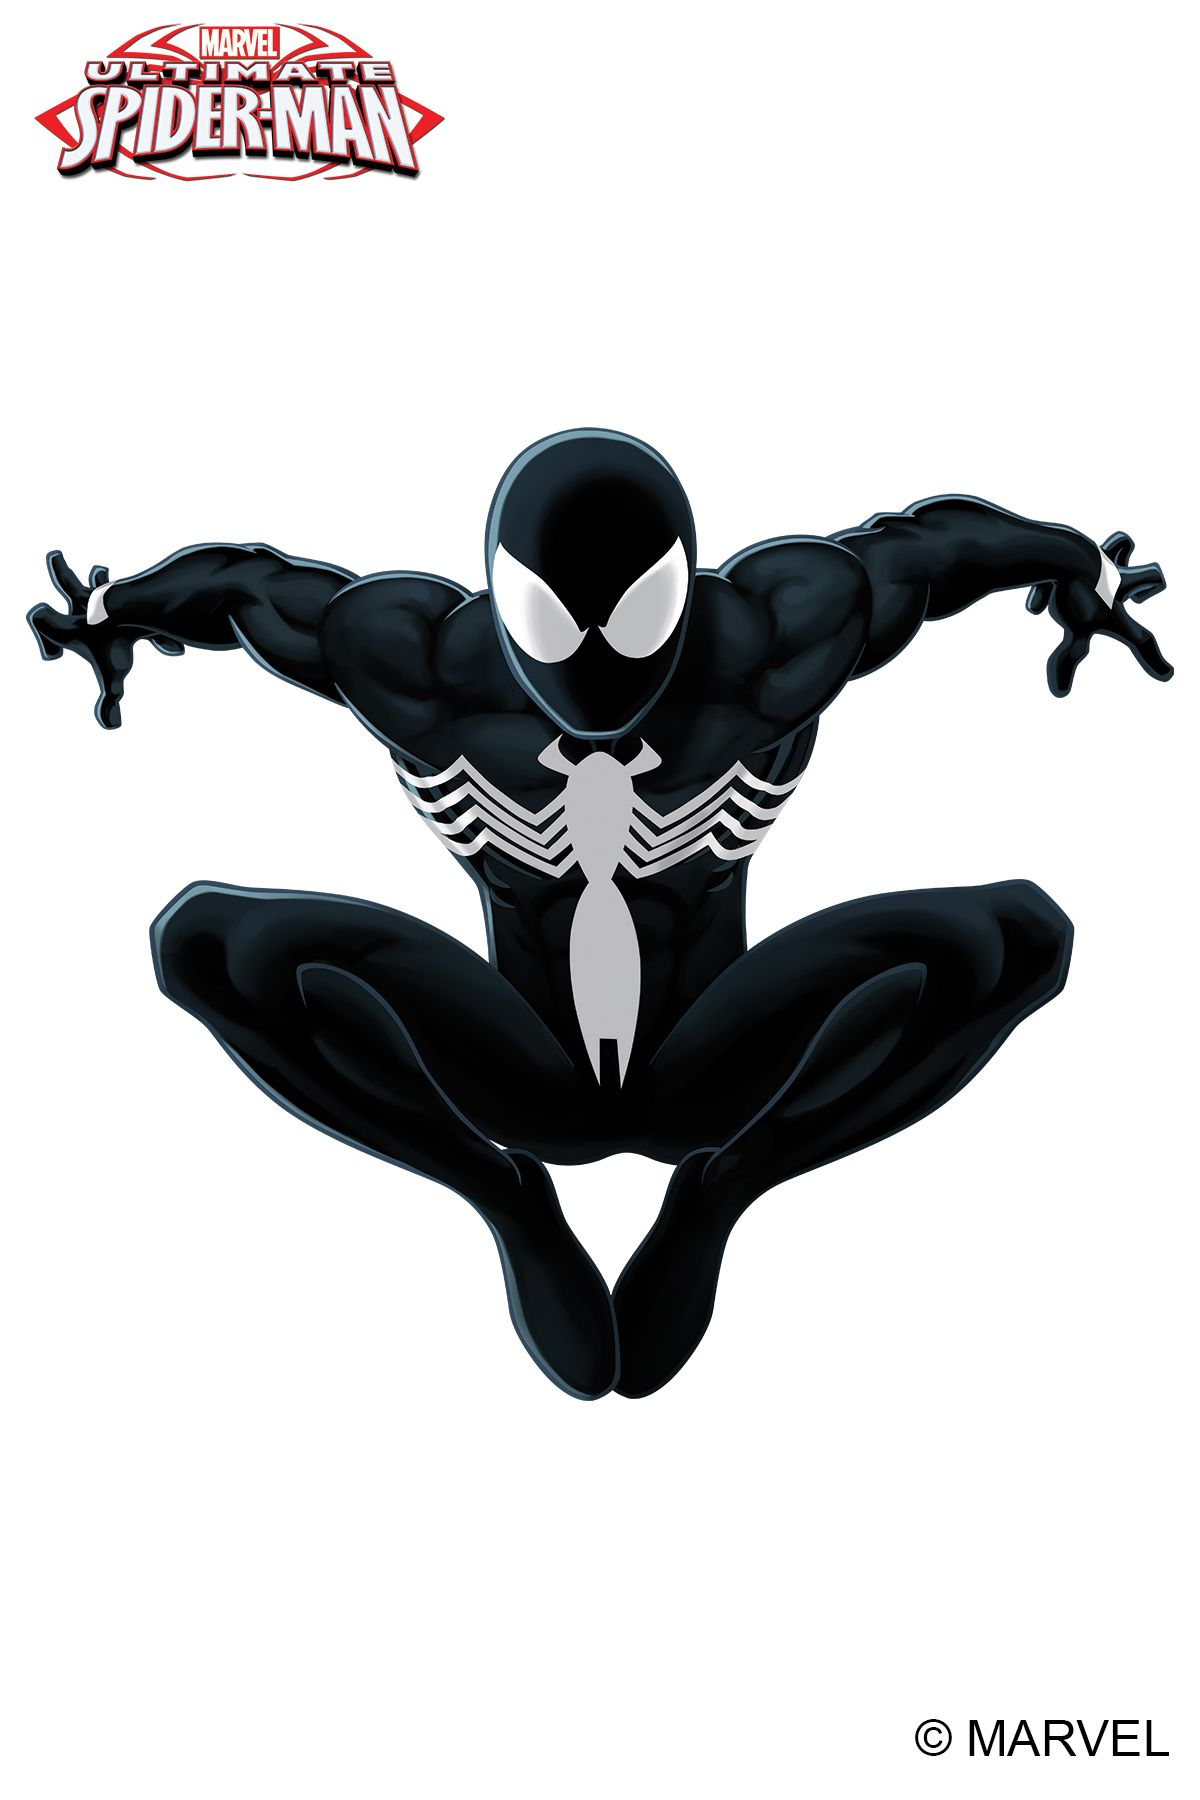 70e0b40c7 Black Suit Spider-Man MARVEL Ultimate Spider-Man #galacticink  #premiumtemporarytattoo #blacksuitspiderman #spiderman #ultimatespiderman